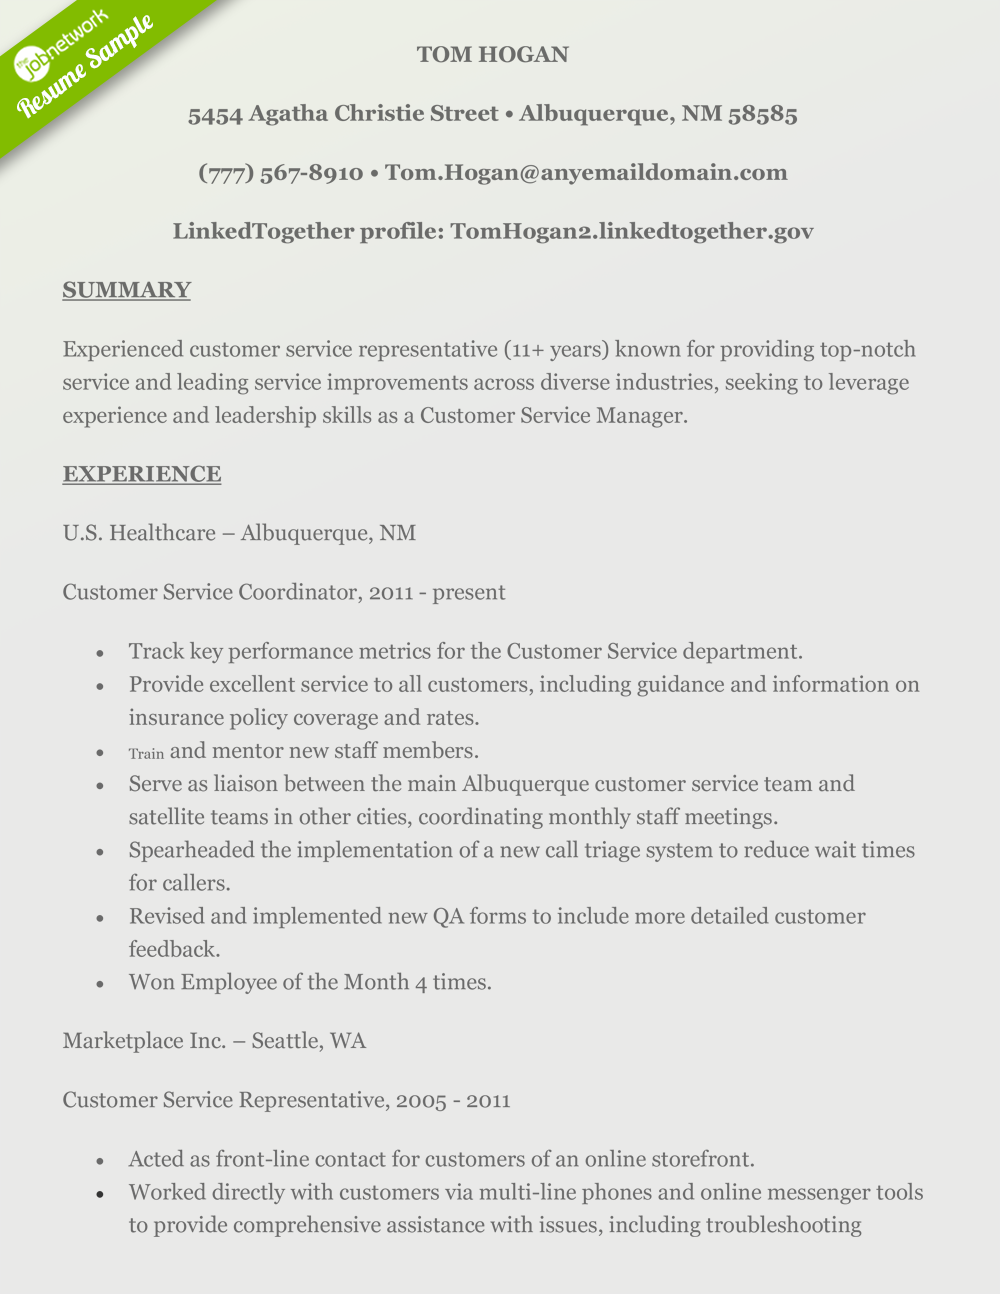 tom hogan resume